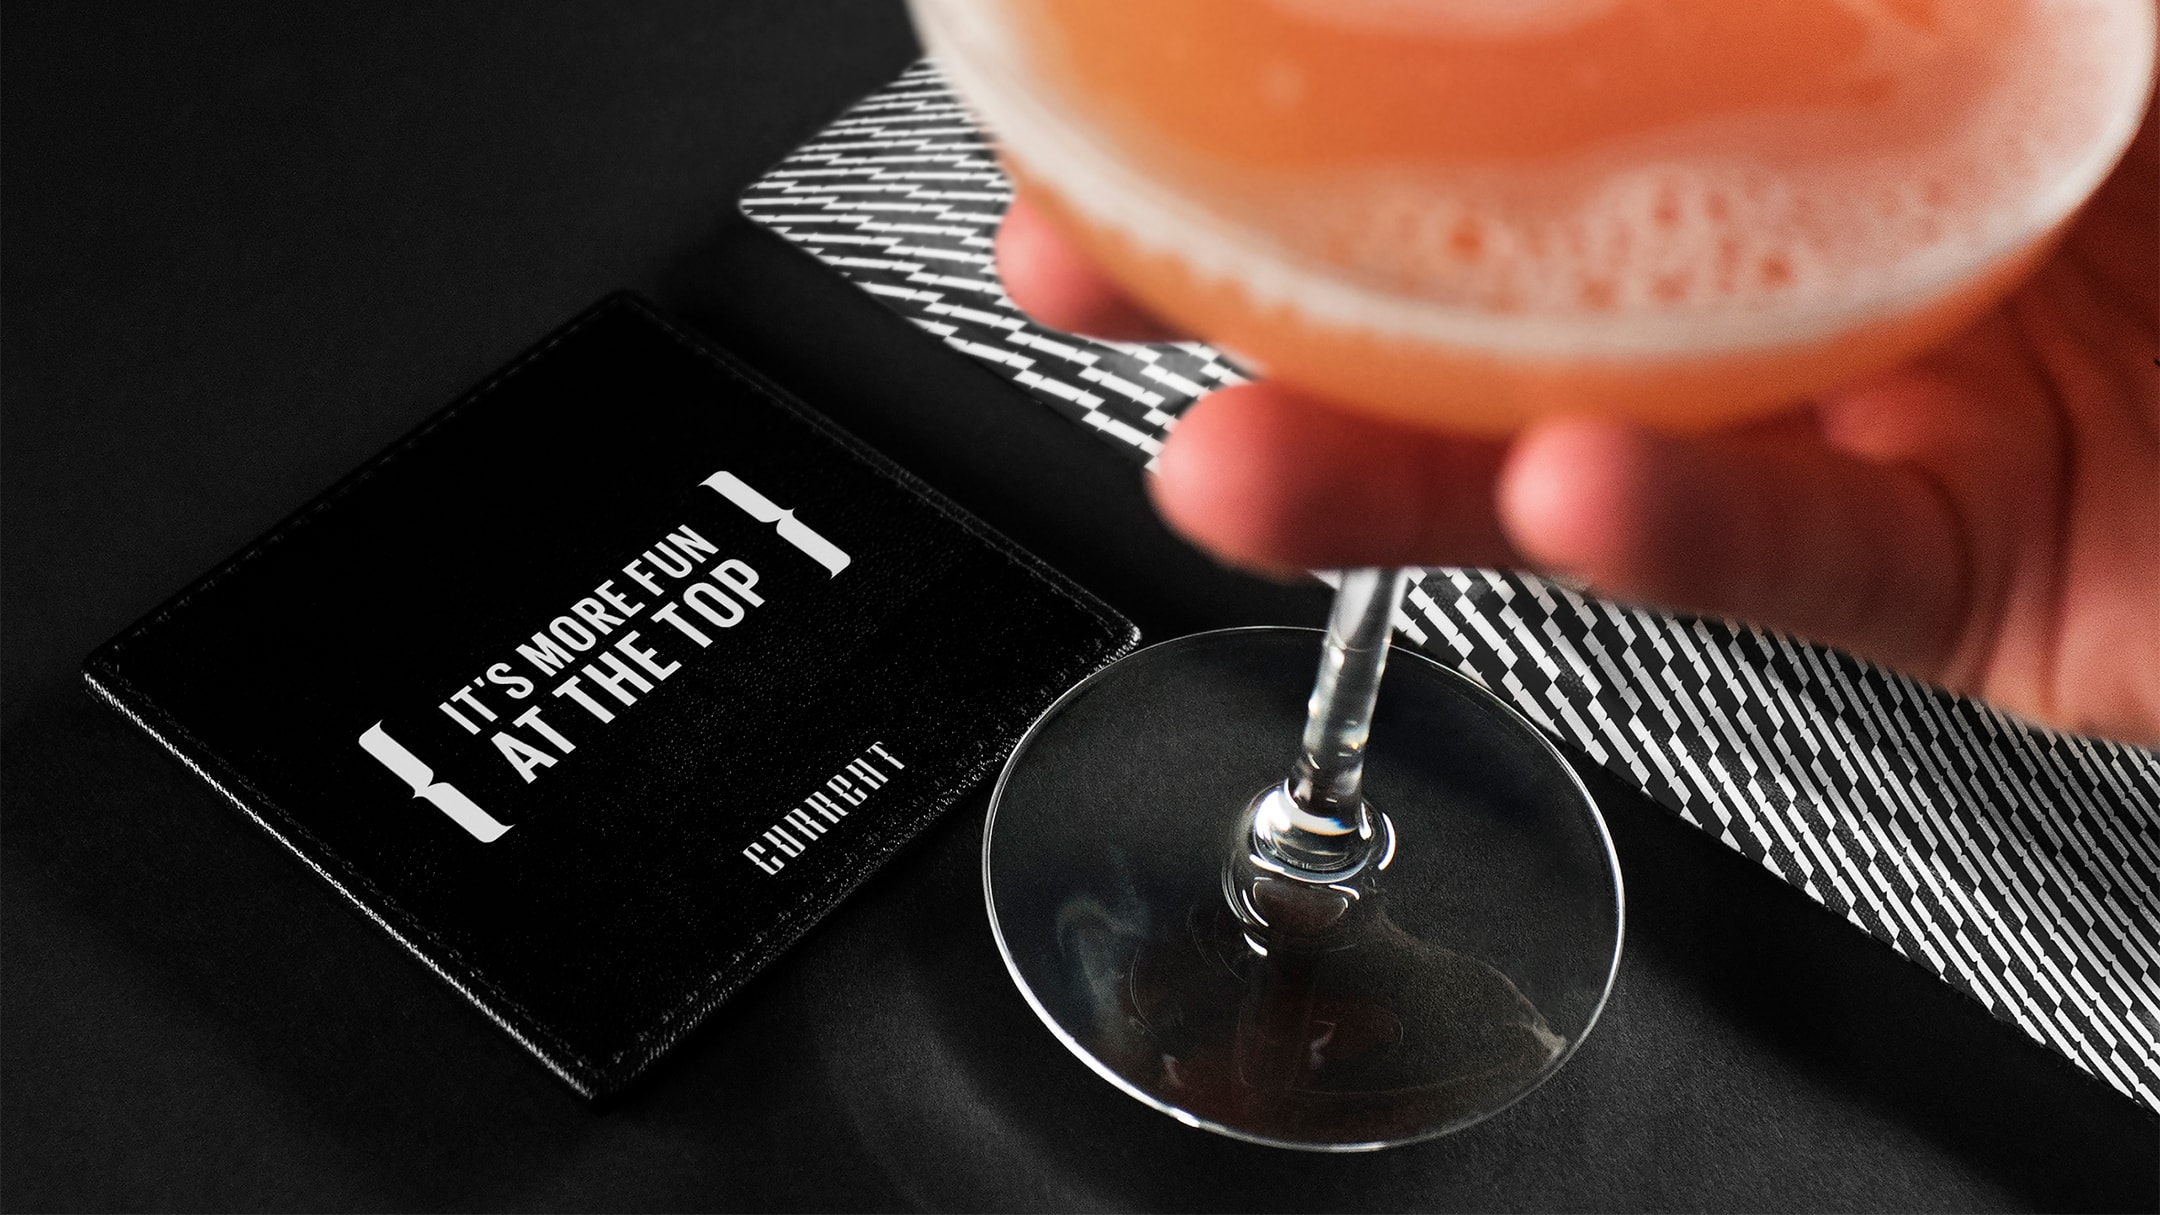 Current hotel branded coaster with a drink.